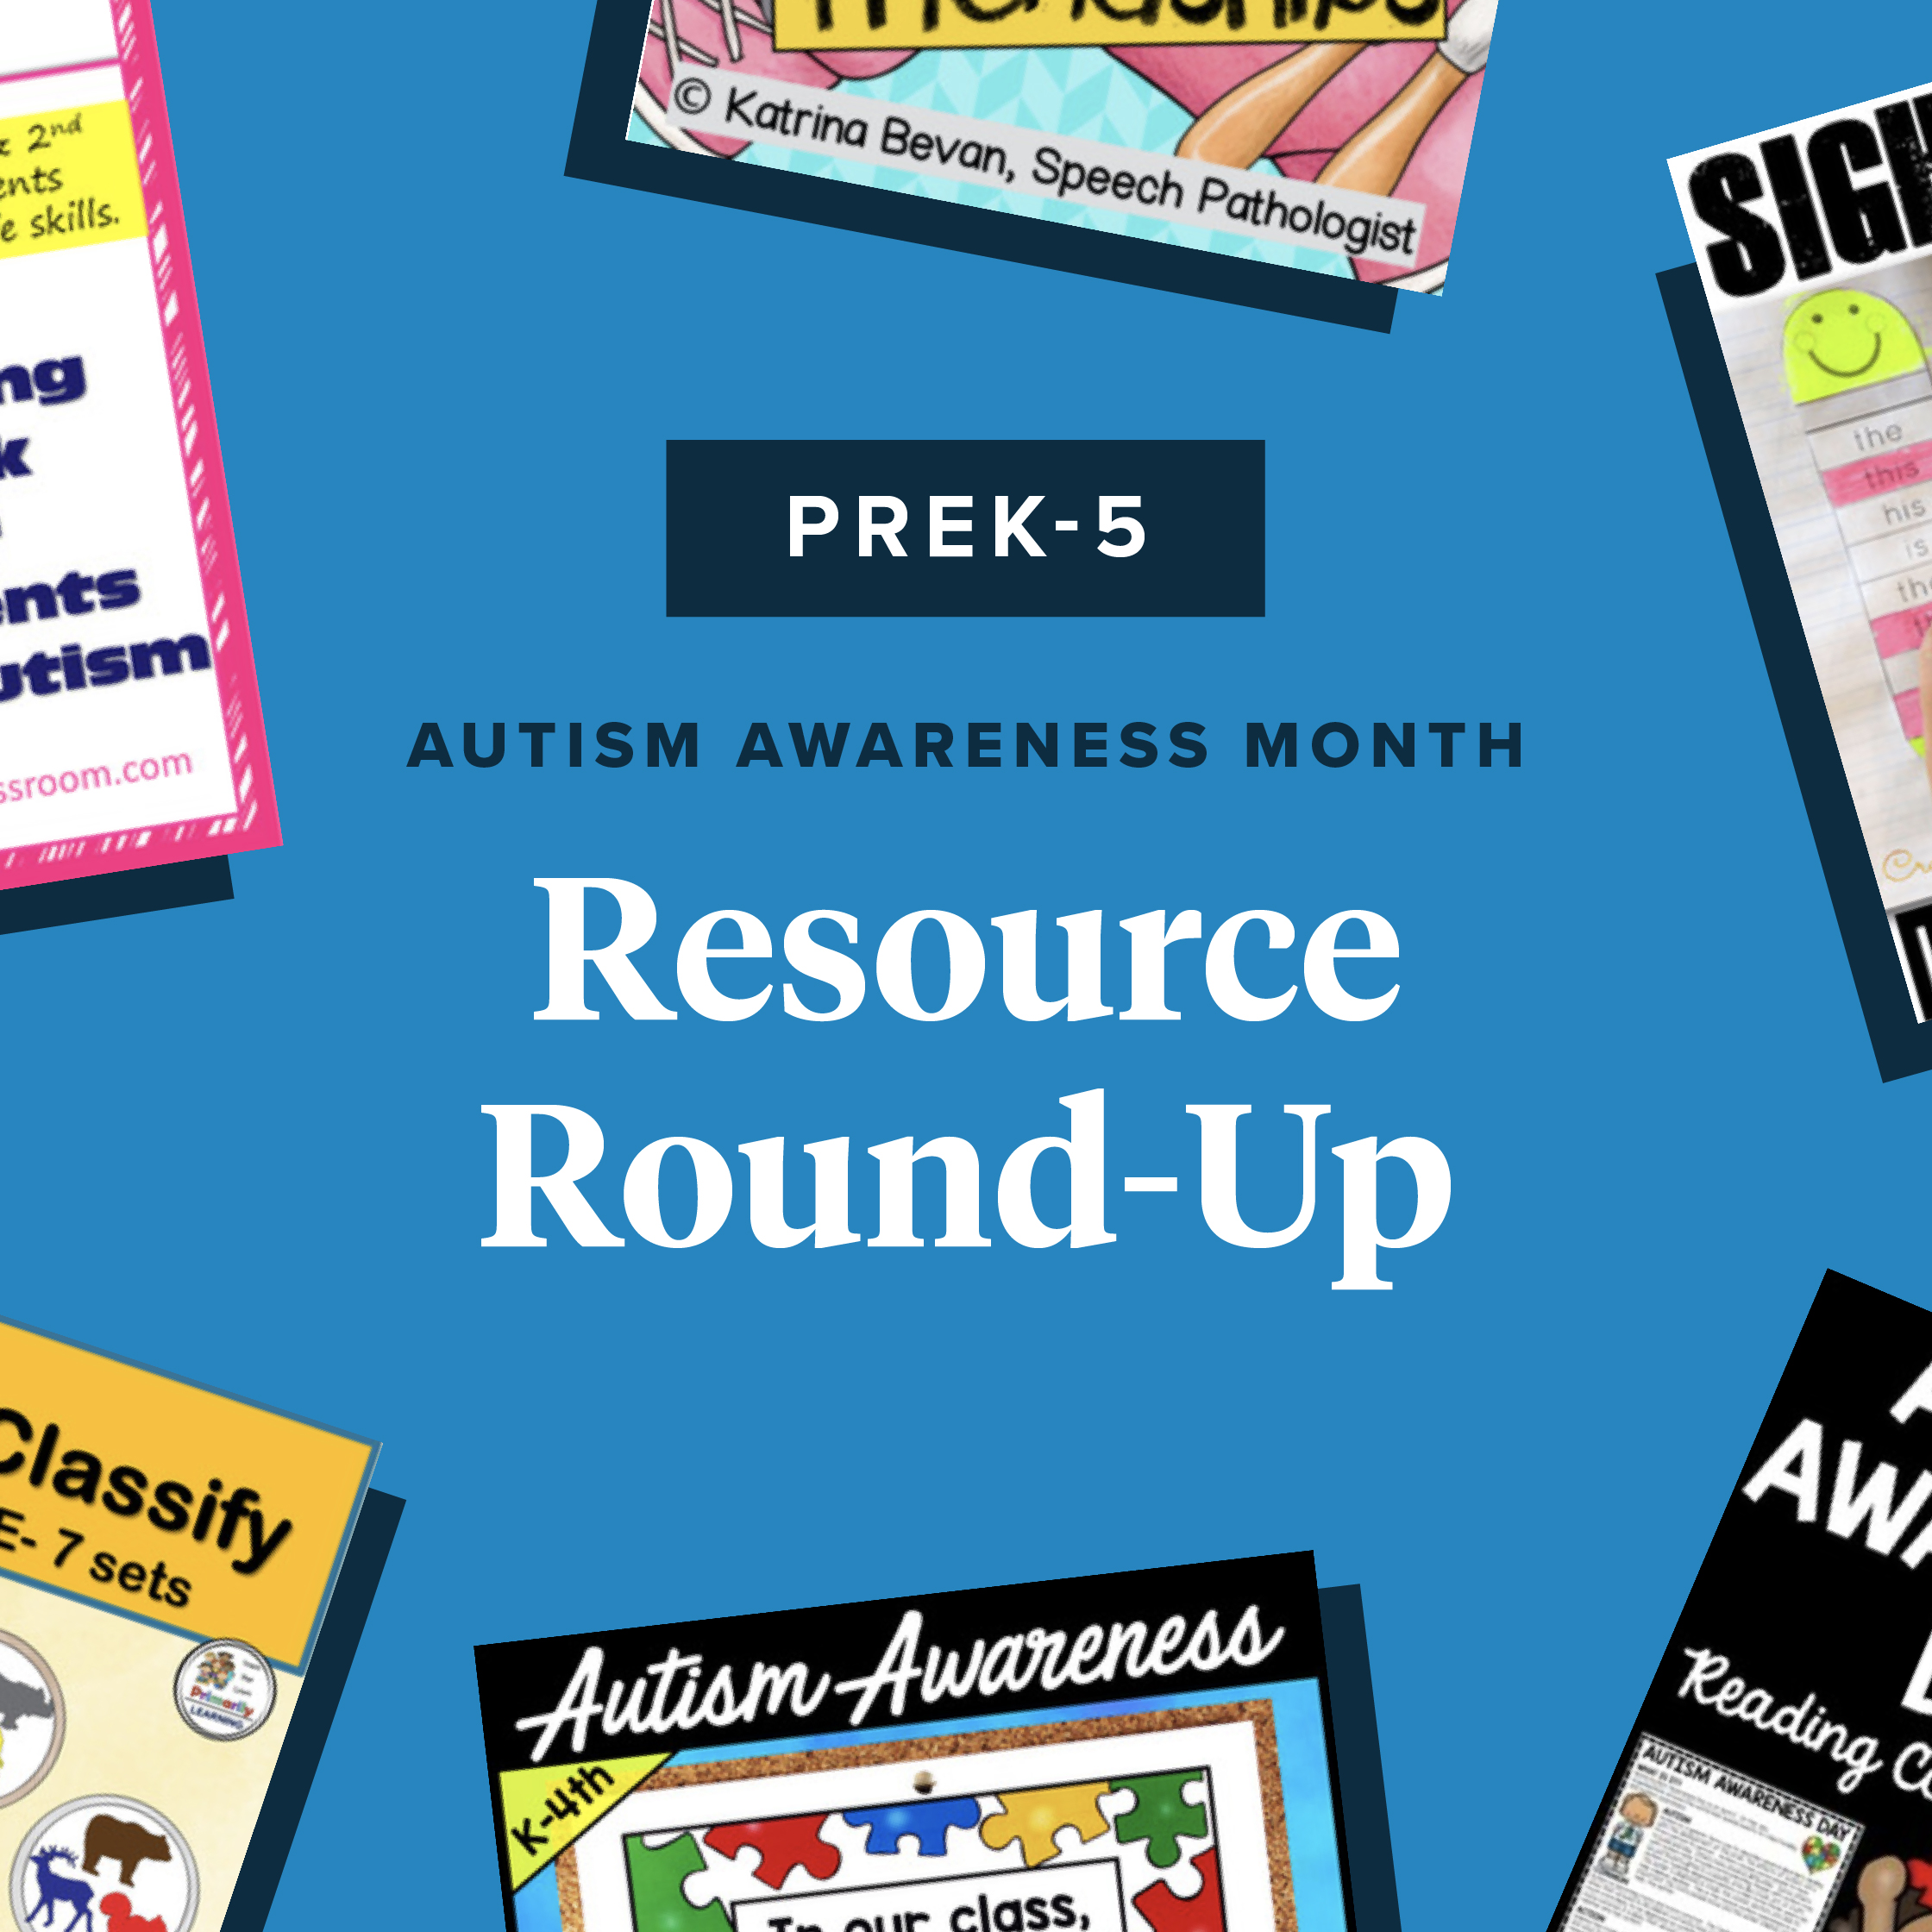 Resources to Support Students With Autism